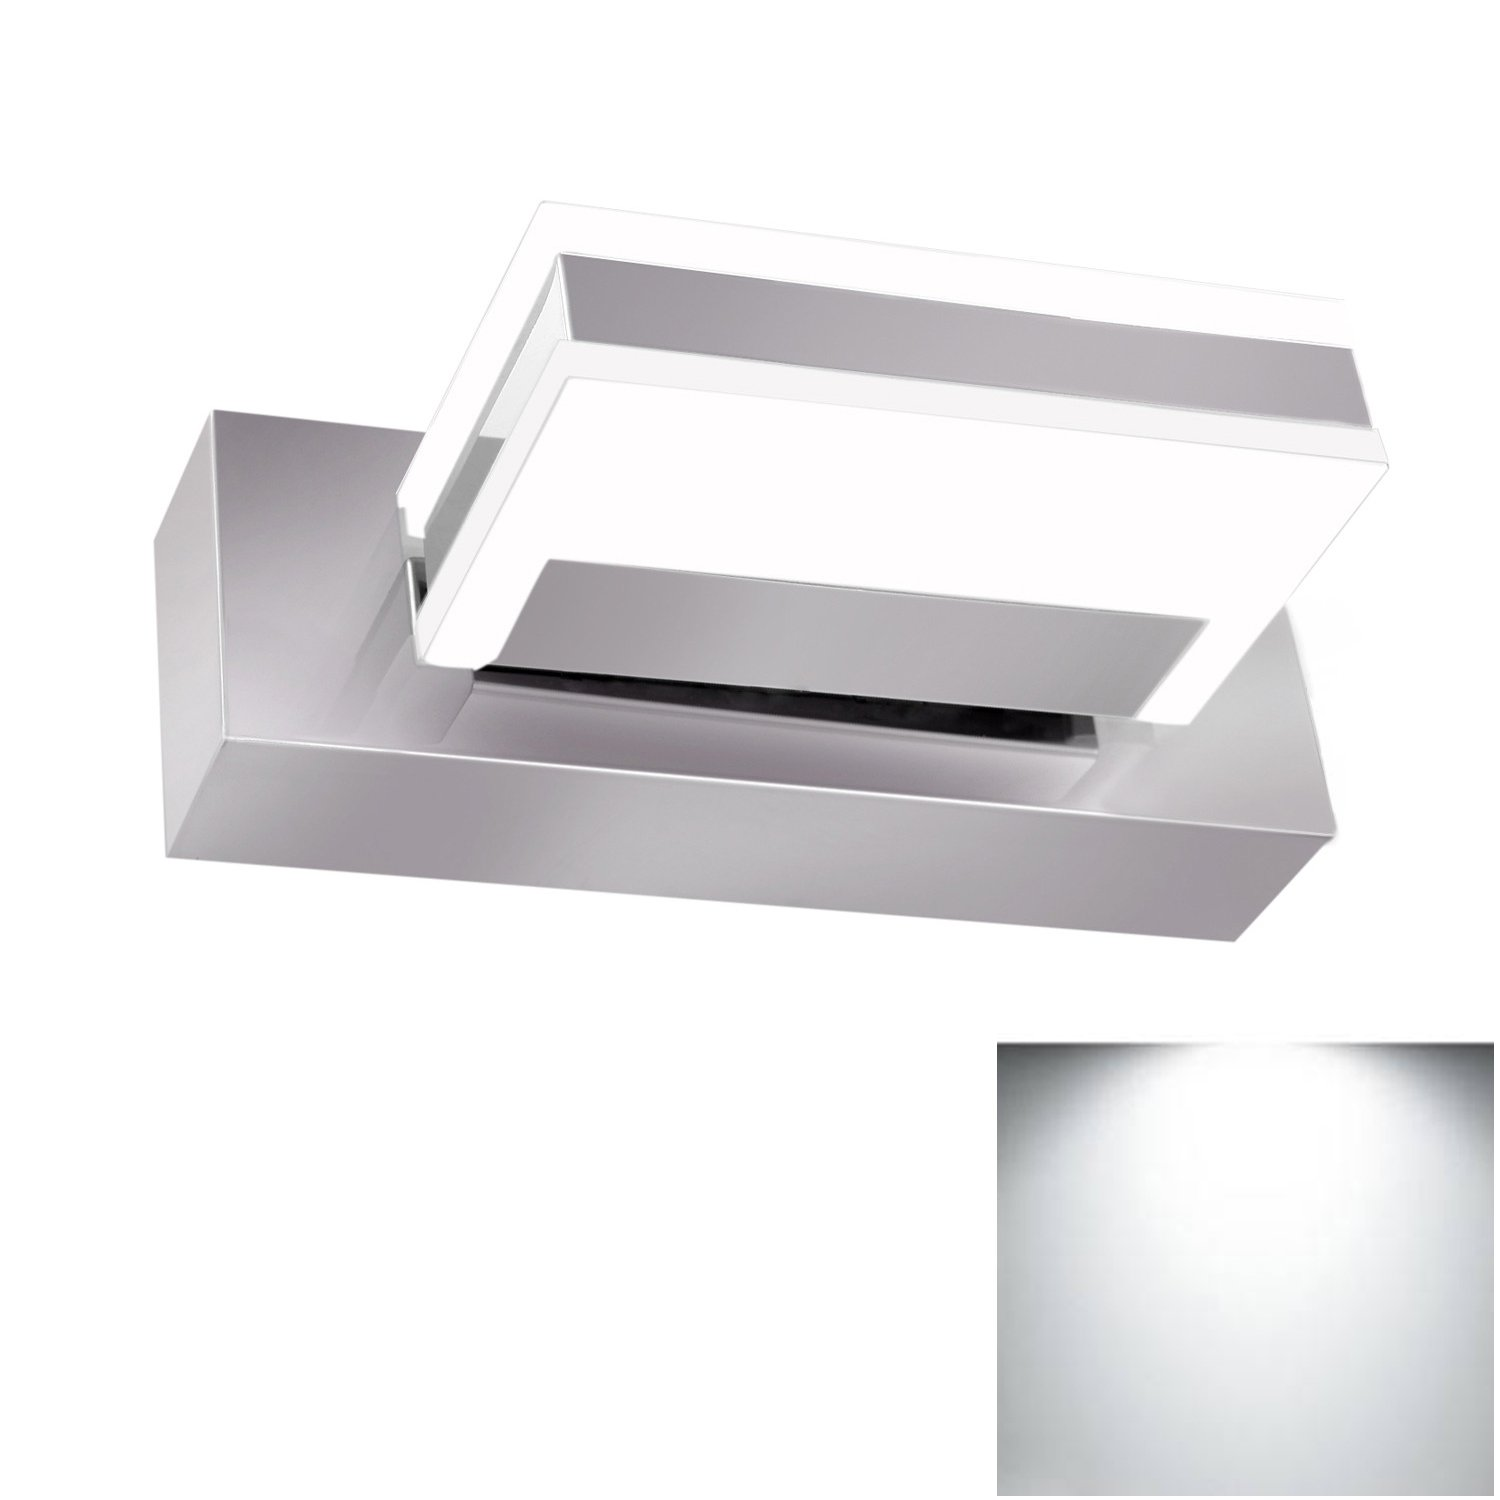 Bathroom Mirror Light Fixture Jentinsun 3W LED Modern Waterproof ...